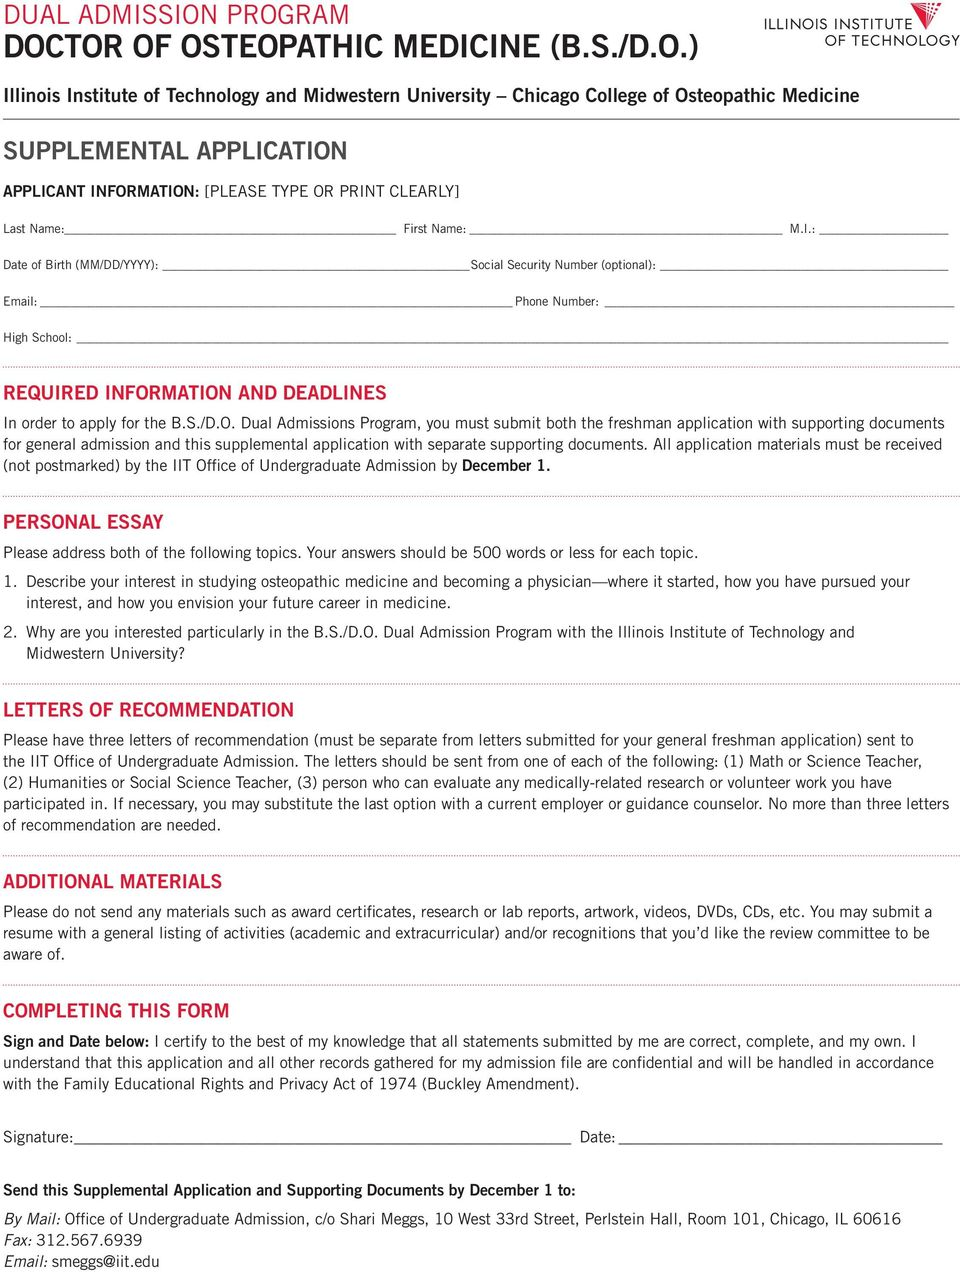 DUAL ADMISSION PROGRAM DOCTOR OF OSTEOPATHIC MEDICINE (B.S./D.O.) - PDF